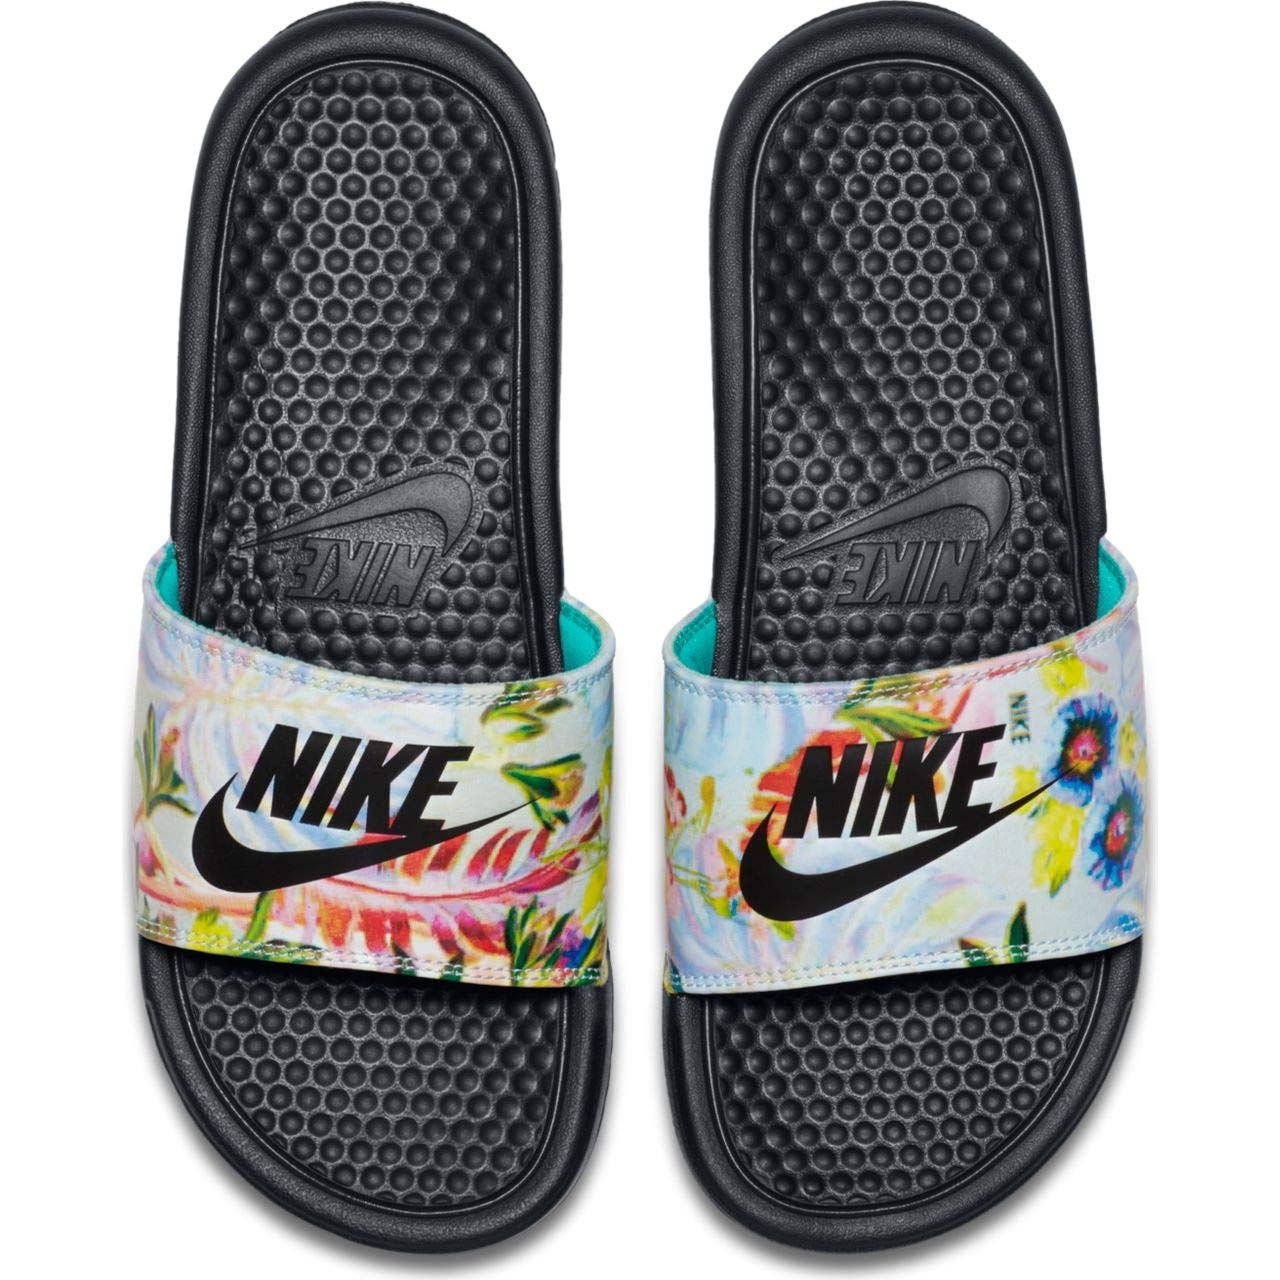 Nike Women's Benassi JDI Print Sandals, Pure Platinum/Black (US 7)